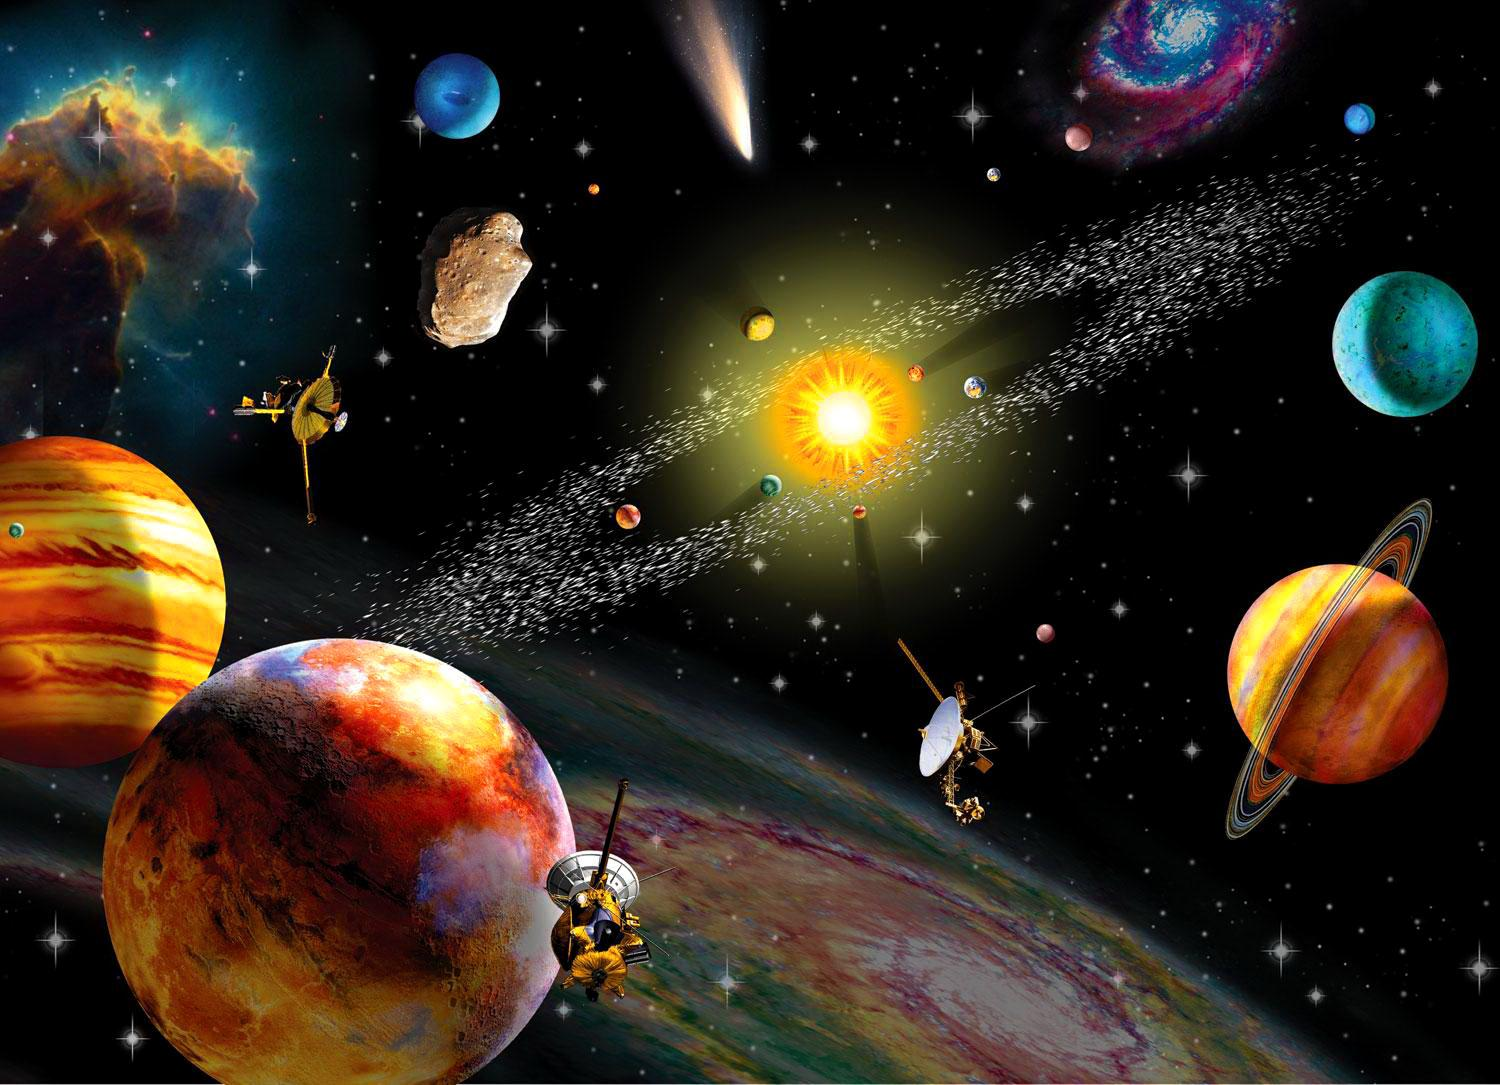 Download solar system wallpapers gallery - Solar system hd wallpapers 1080p ...